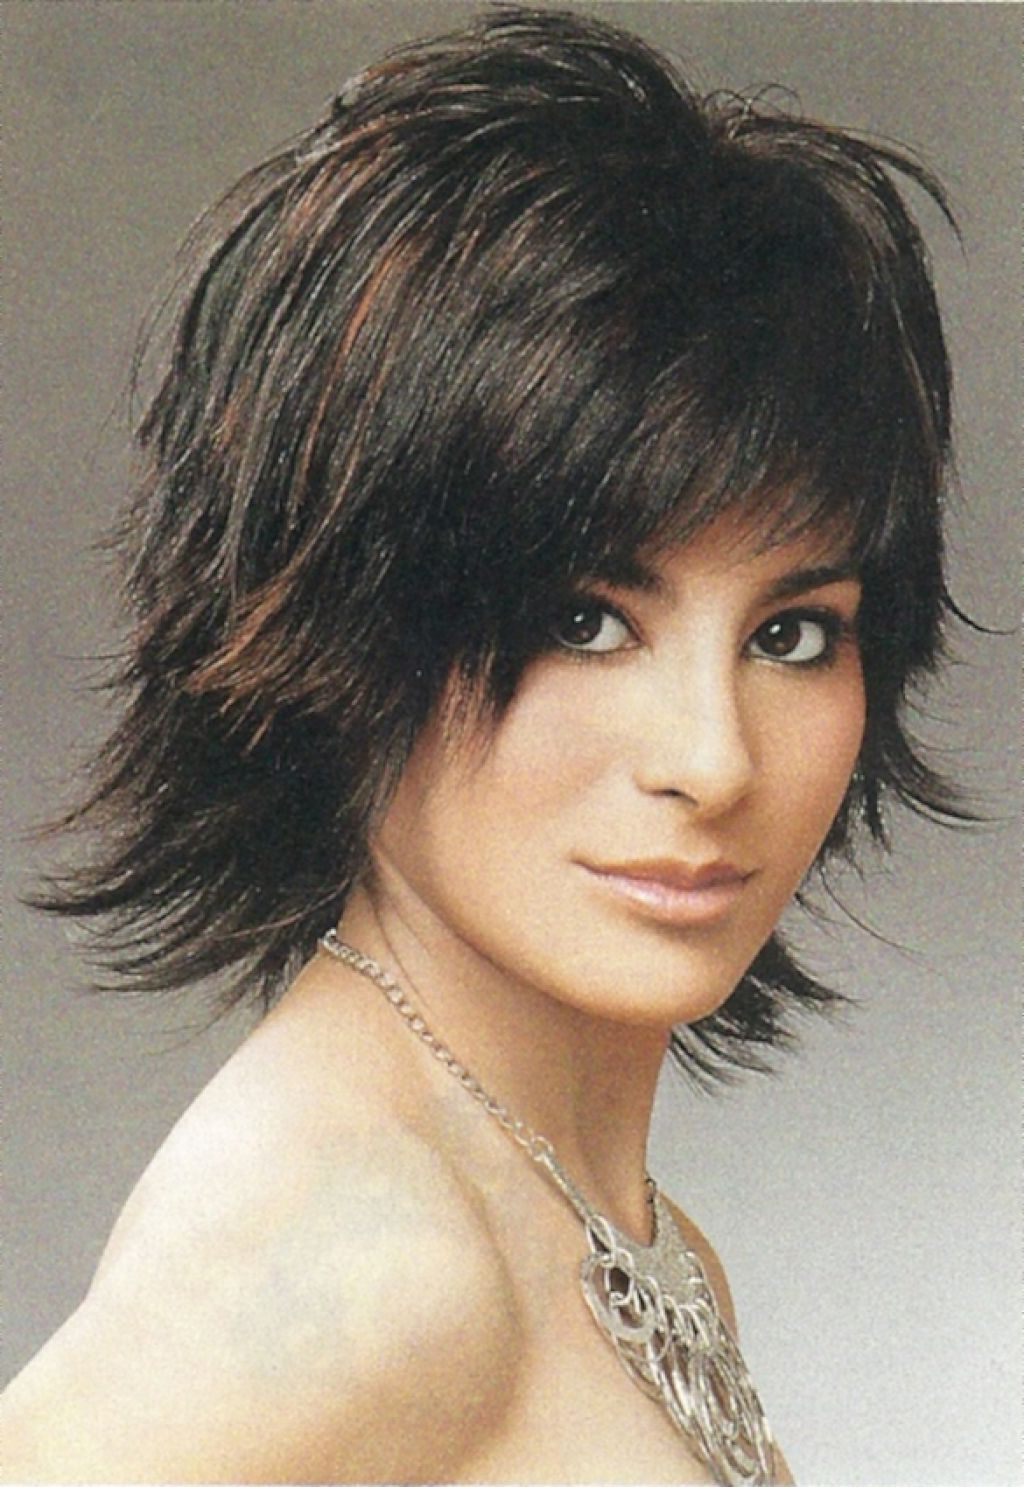 Messy Shaggy Hairstyles For Women (View 14 of 20)